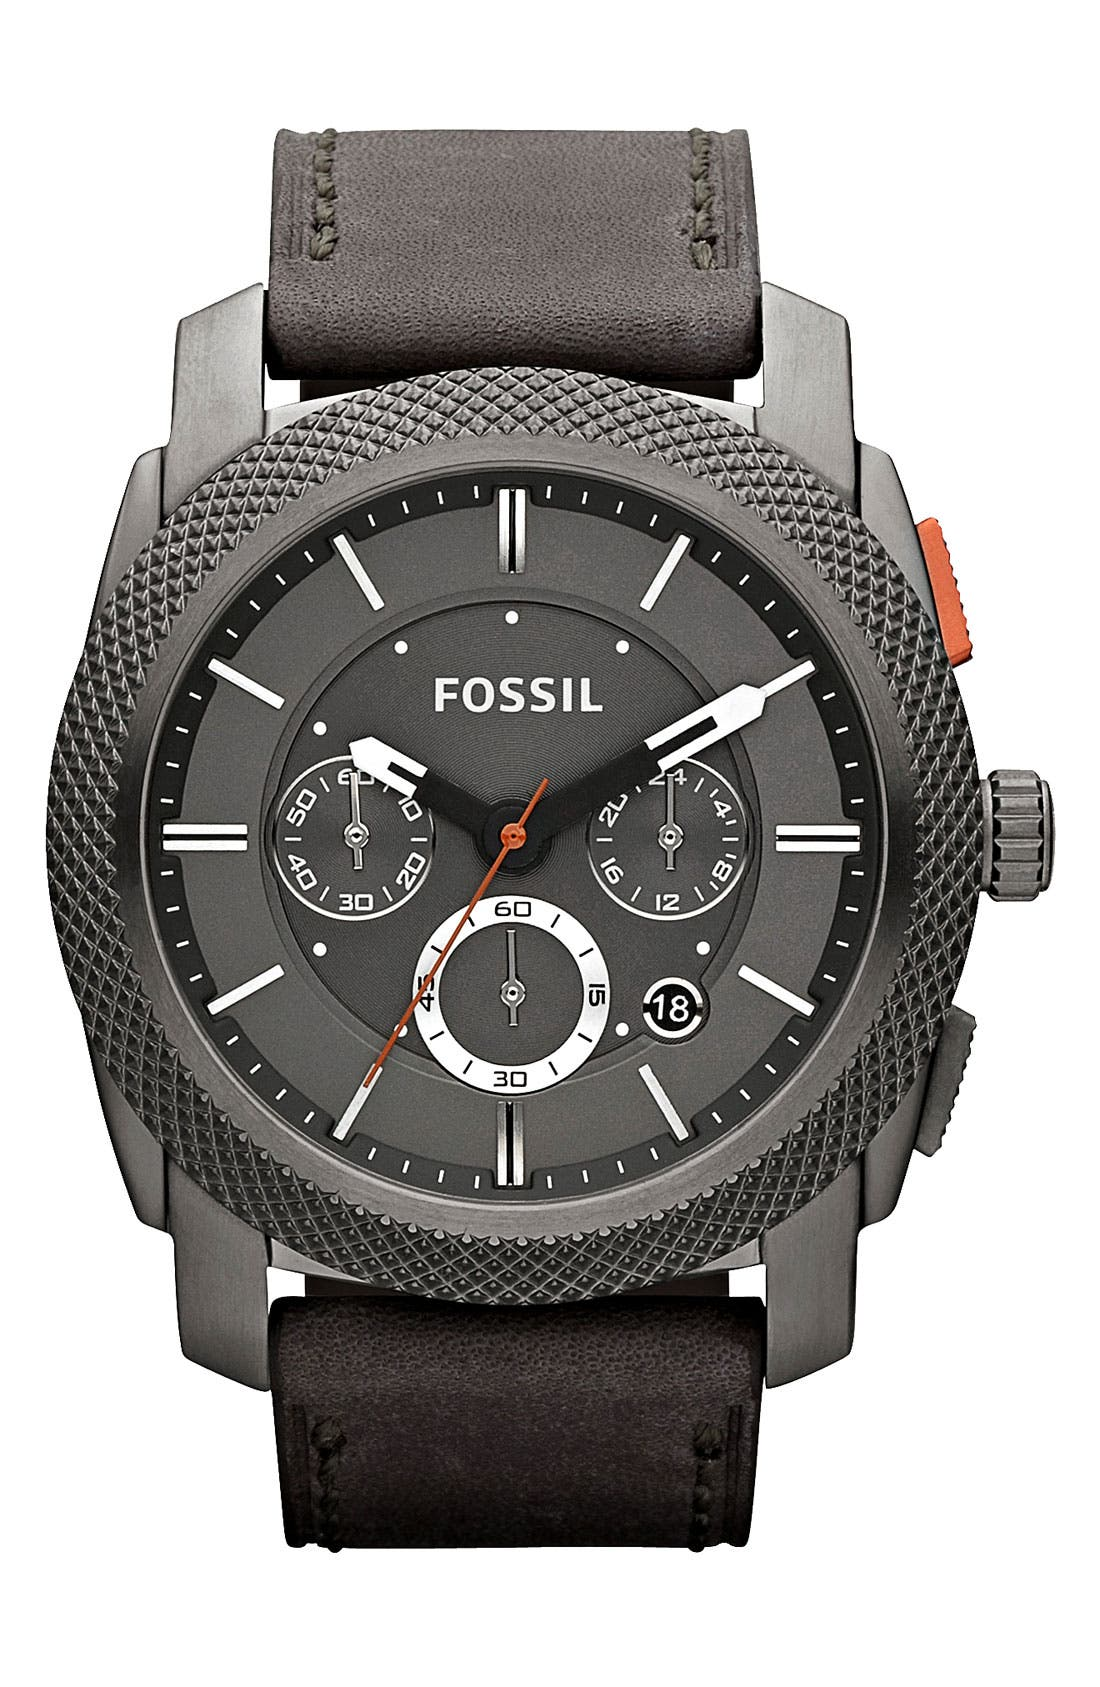 Main Image - Fossil 'Machine' Chronograph Leather Strap Watch, 45mm